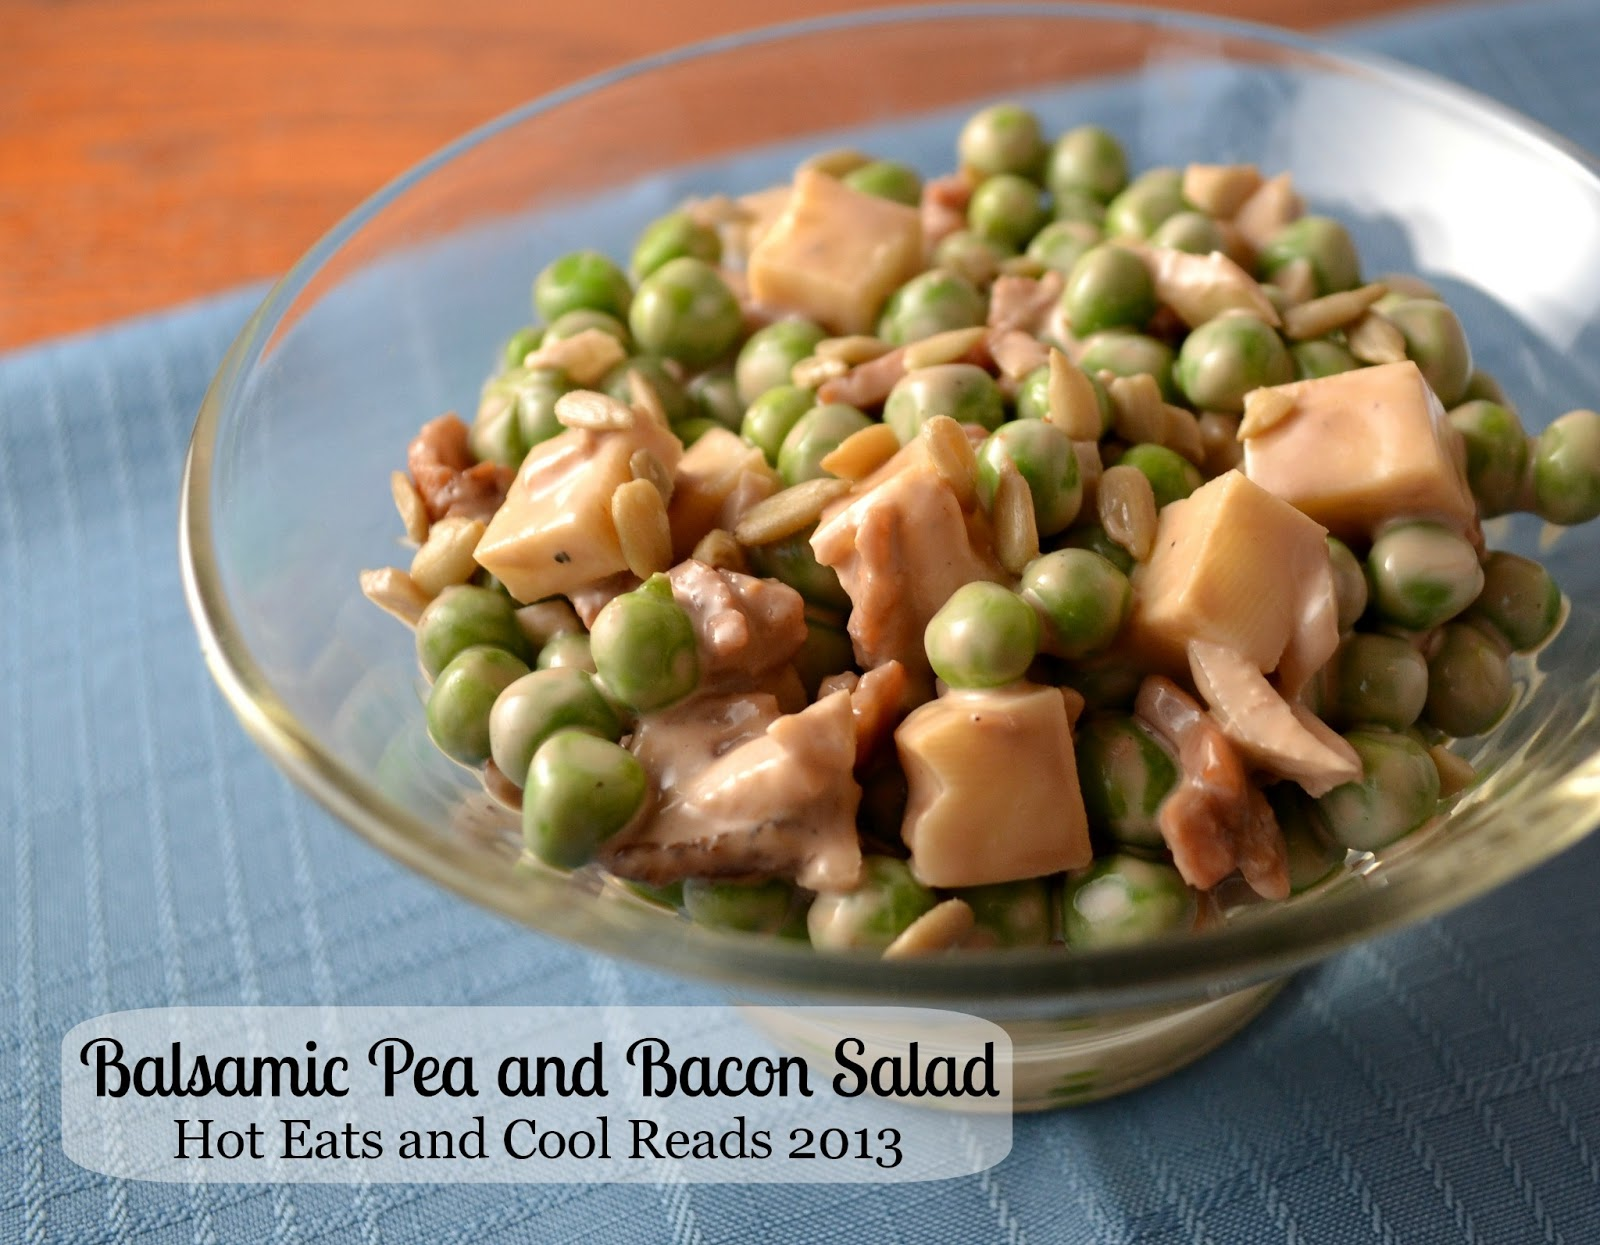 Hot Eats and Cool Reads: Balsamic Pea and Bacon Salad Recipe